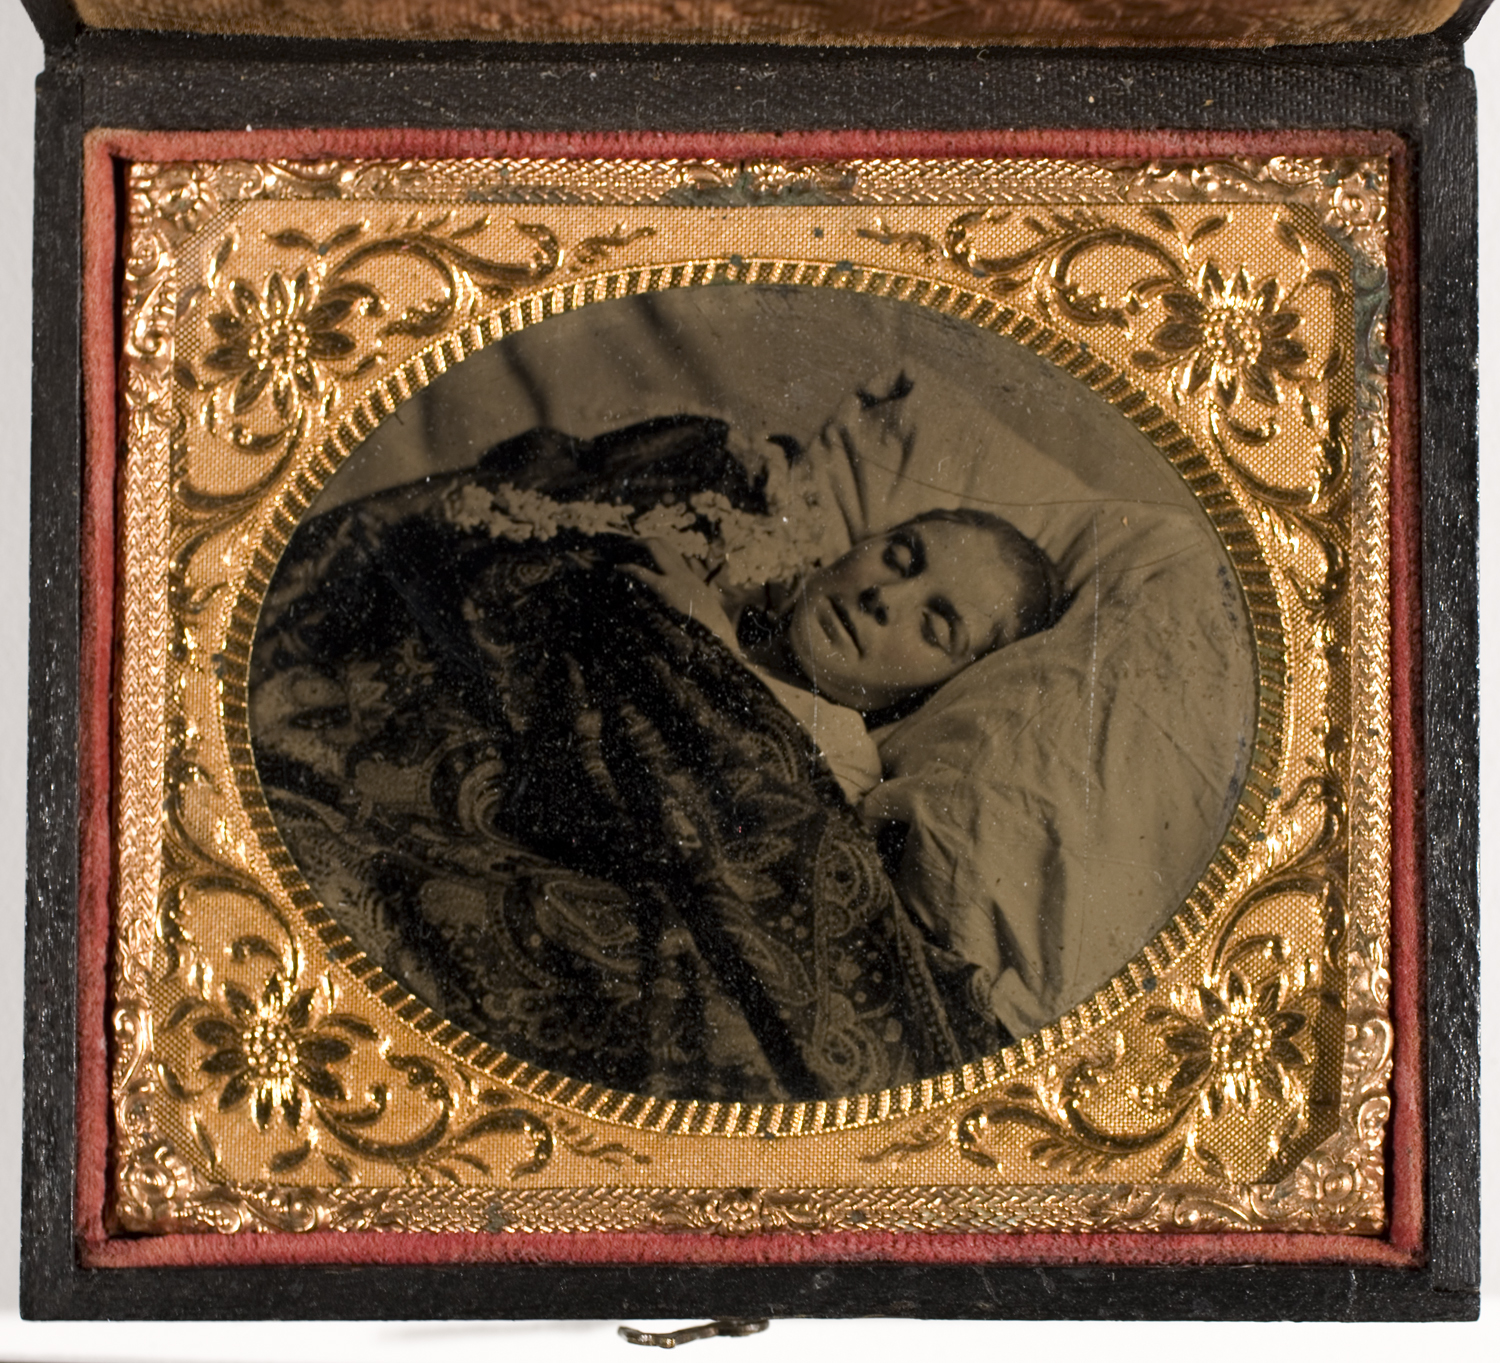 Unidentified Photographer, [Postmortem Unidentified Woman],  ca. 1865. International Center of Photography, Gift of Steven Kasher and Susan Spungen Kasher, 2008 (2008.81.72)